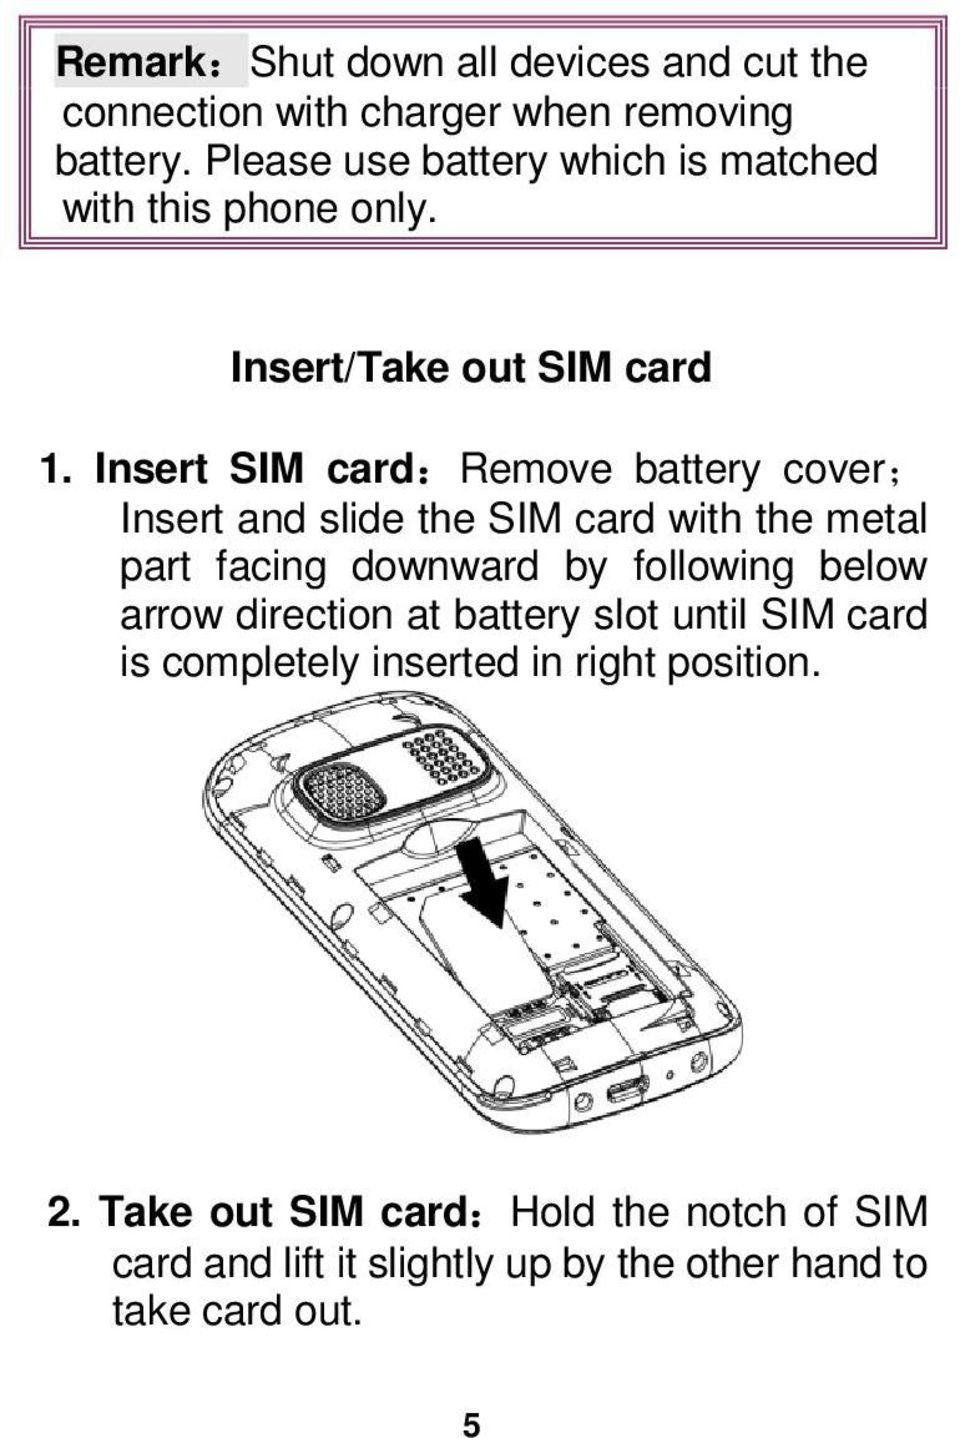 Insert SIM card:remove battery cover; Insert and slide the SIM card with the metal part facing downward by following below